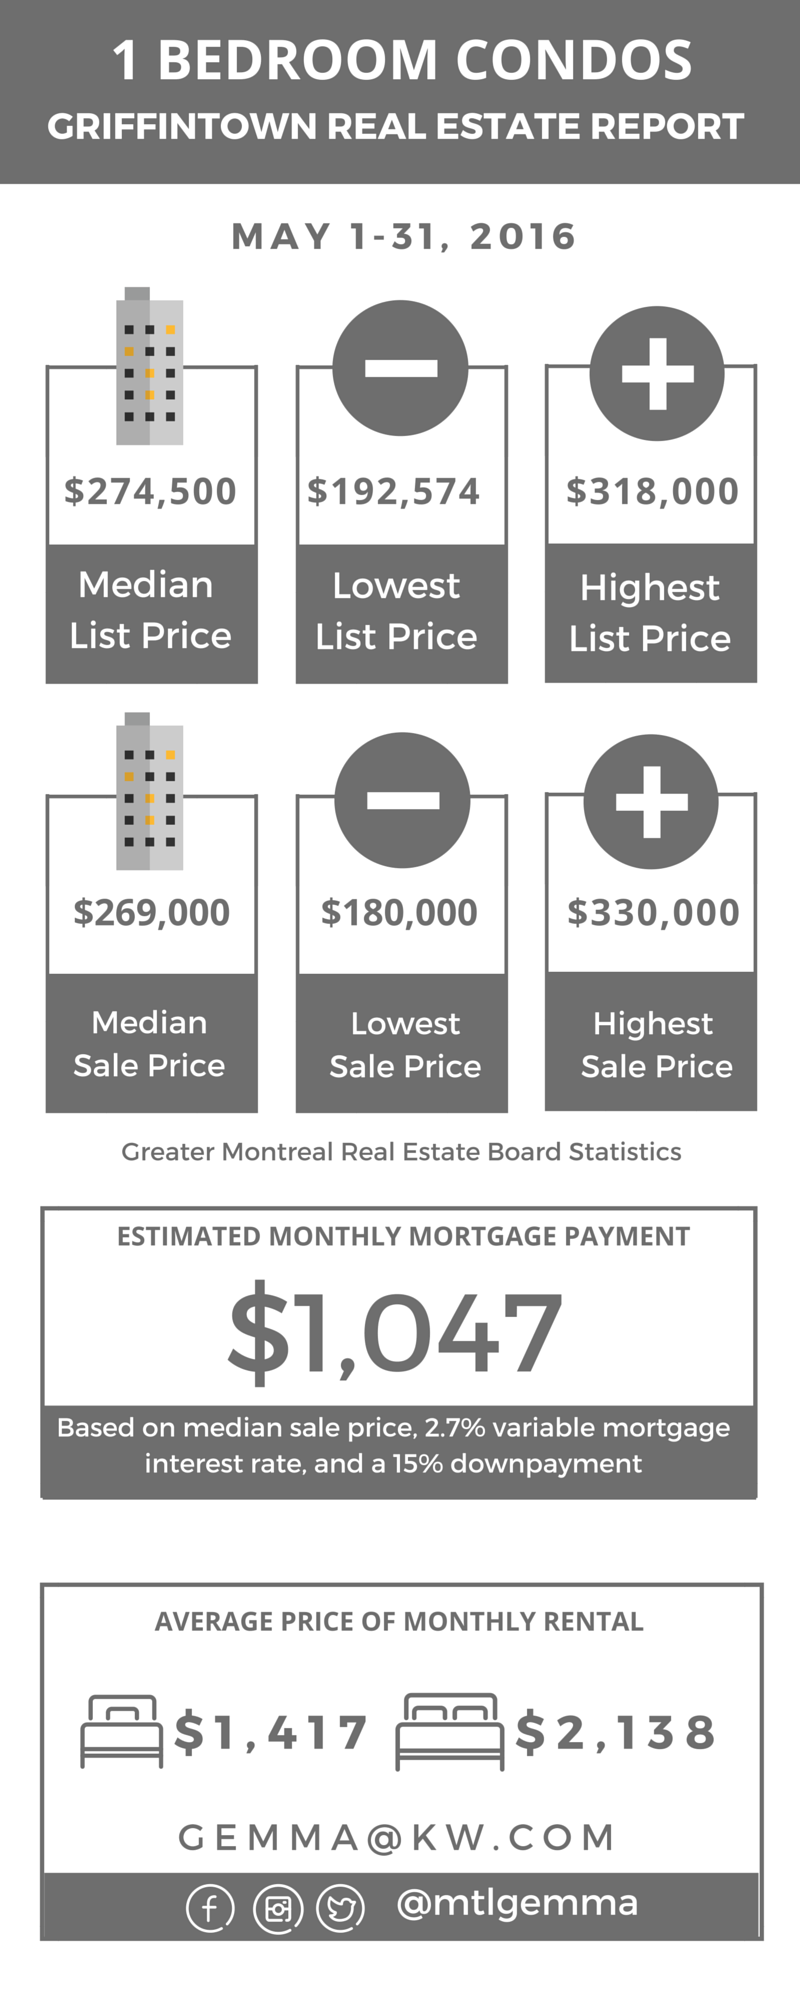 Griffintown Real Estate Market Report May 2016 03